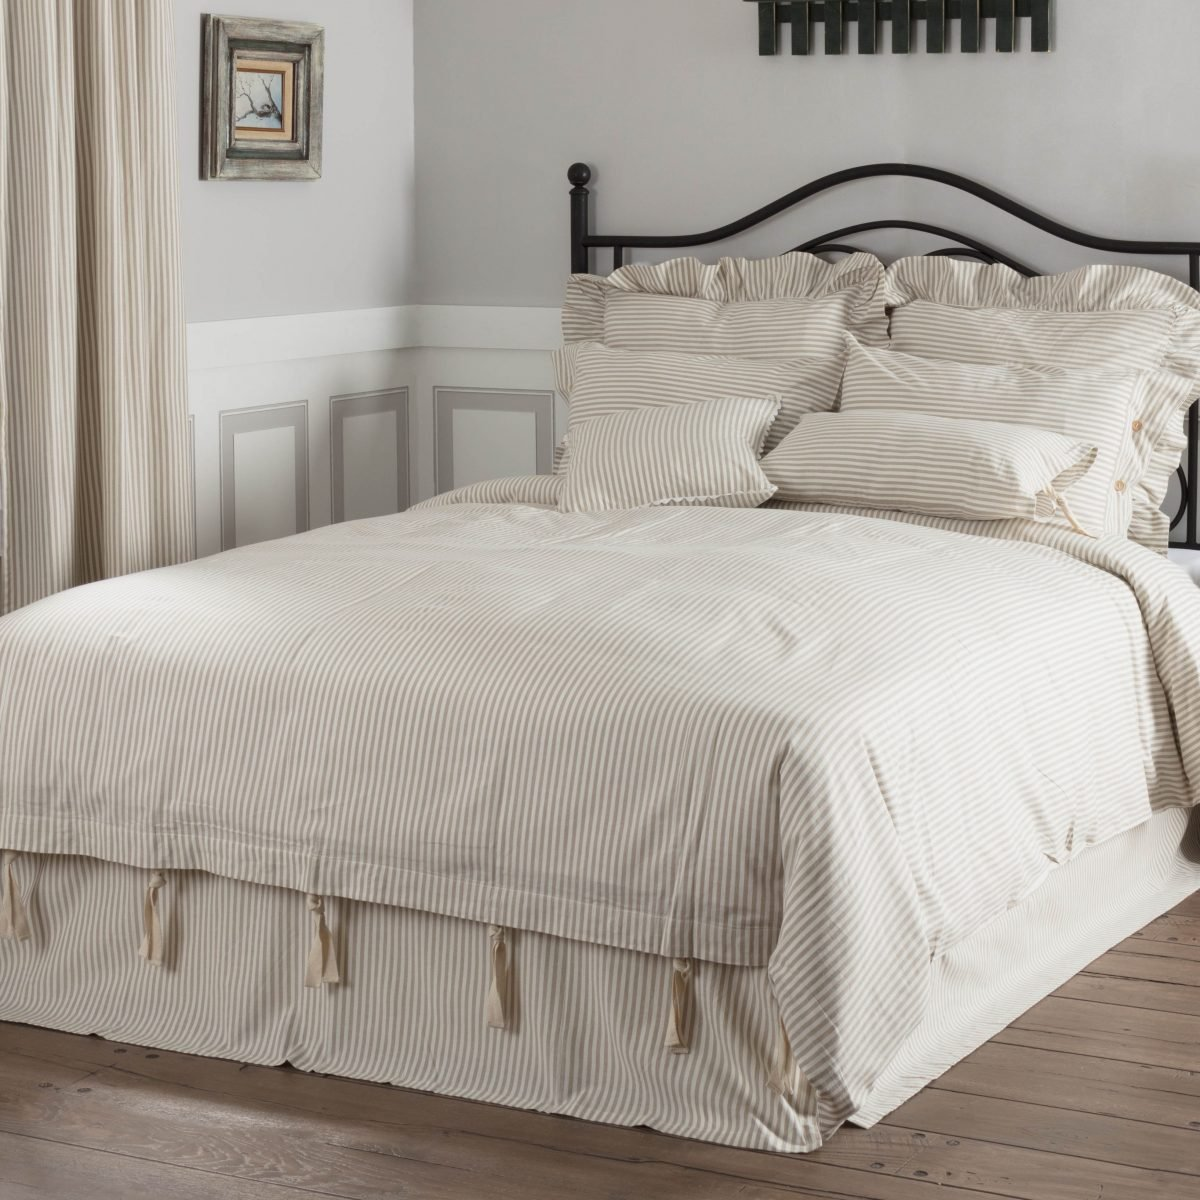 Farmhouse Ticking Taupe Duvet Cover King Piper Classics